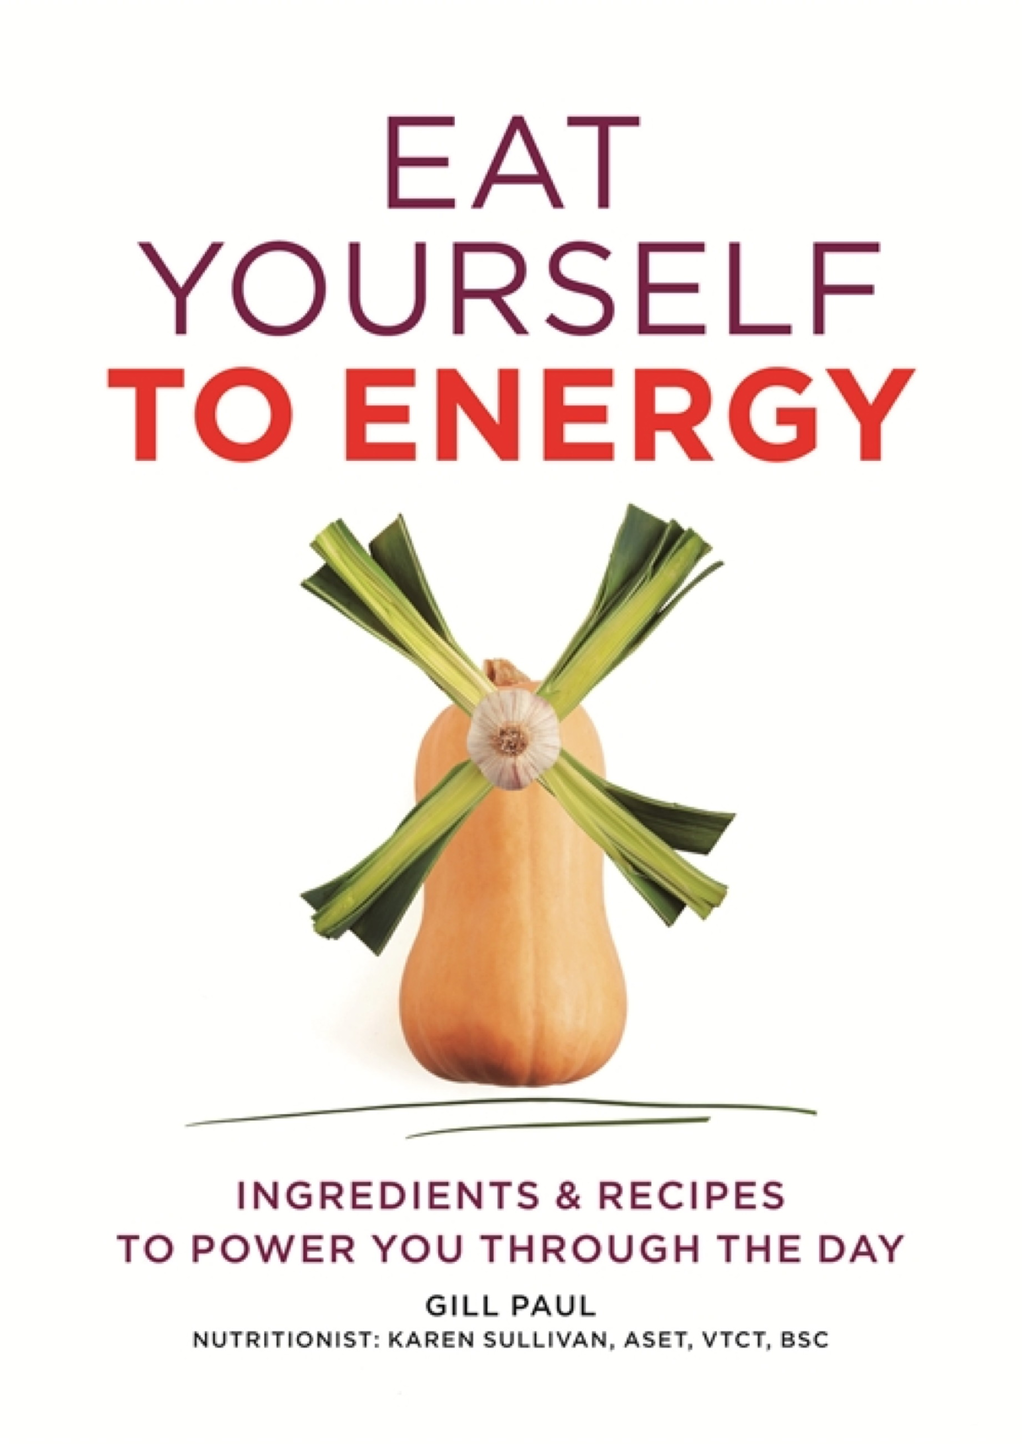 Eat Yourself to Energy Ingredients & Recipes to Power You Through the Day